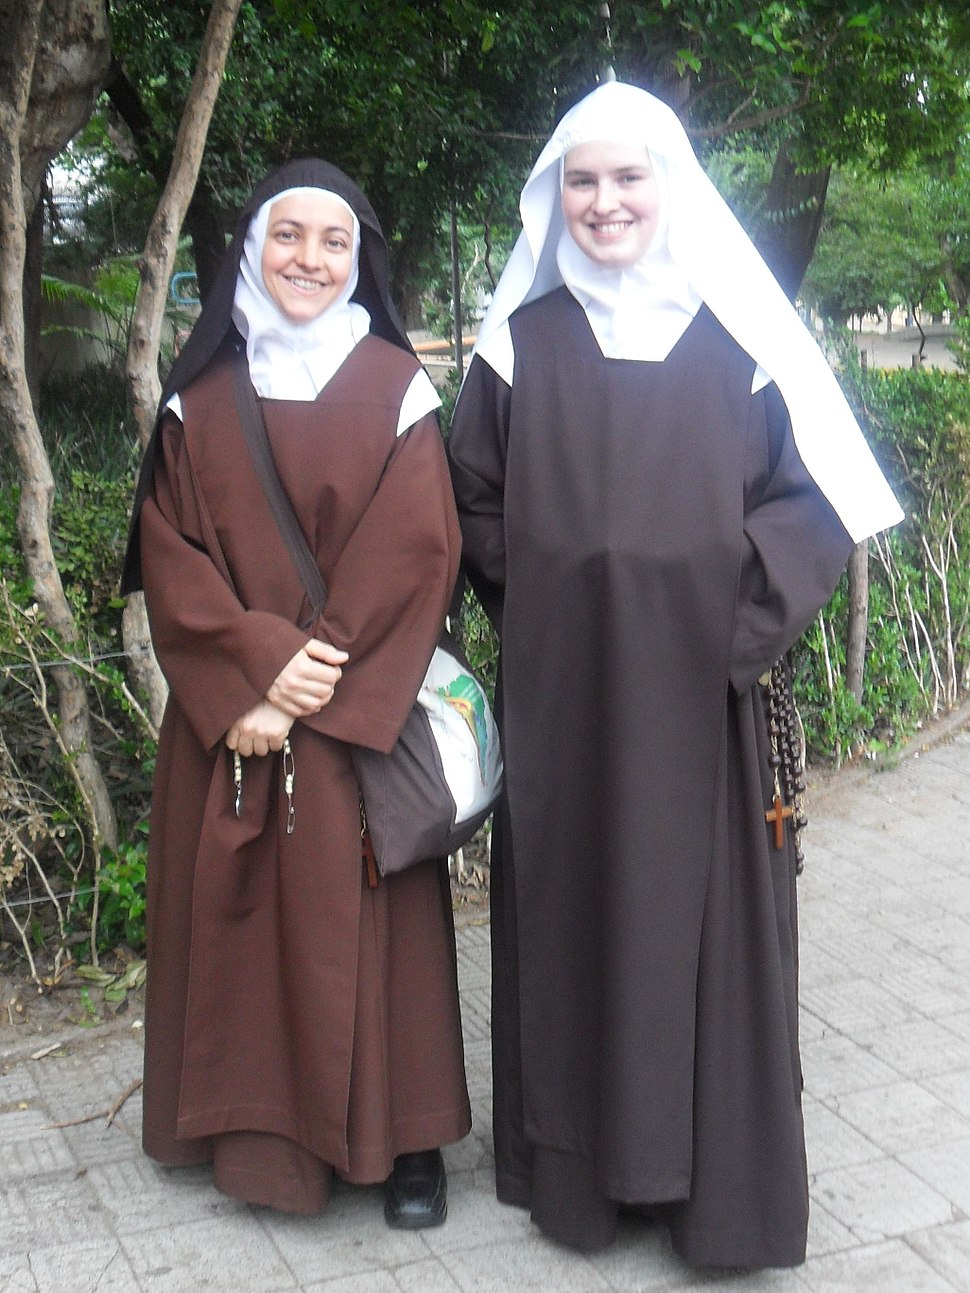 Nun and novice discalced carmelites in Porto Alegre Brazil 20101129.jpeg